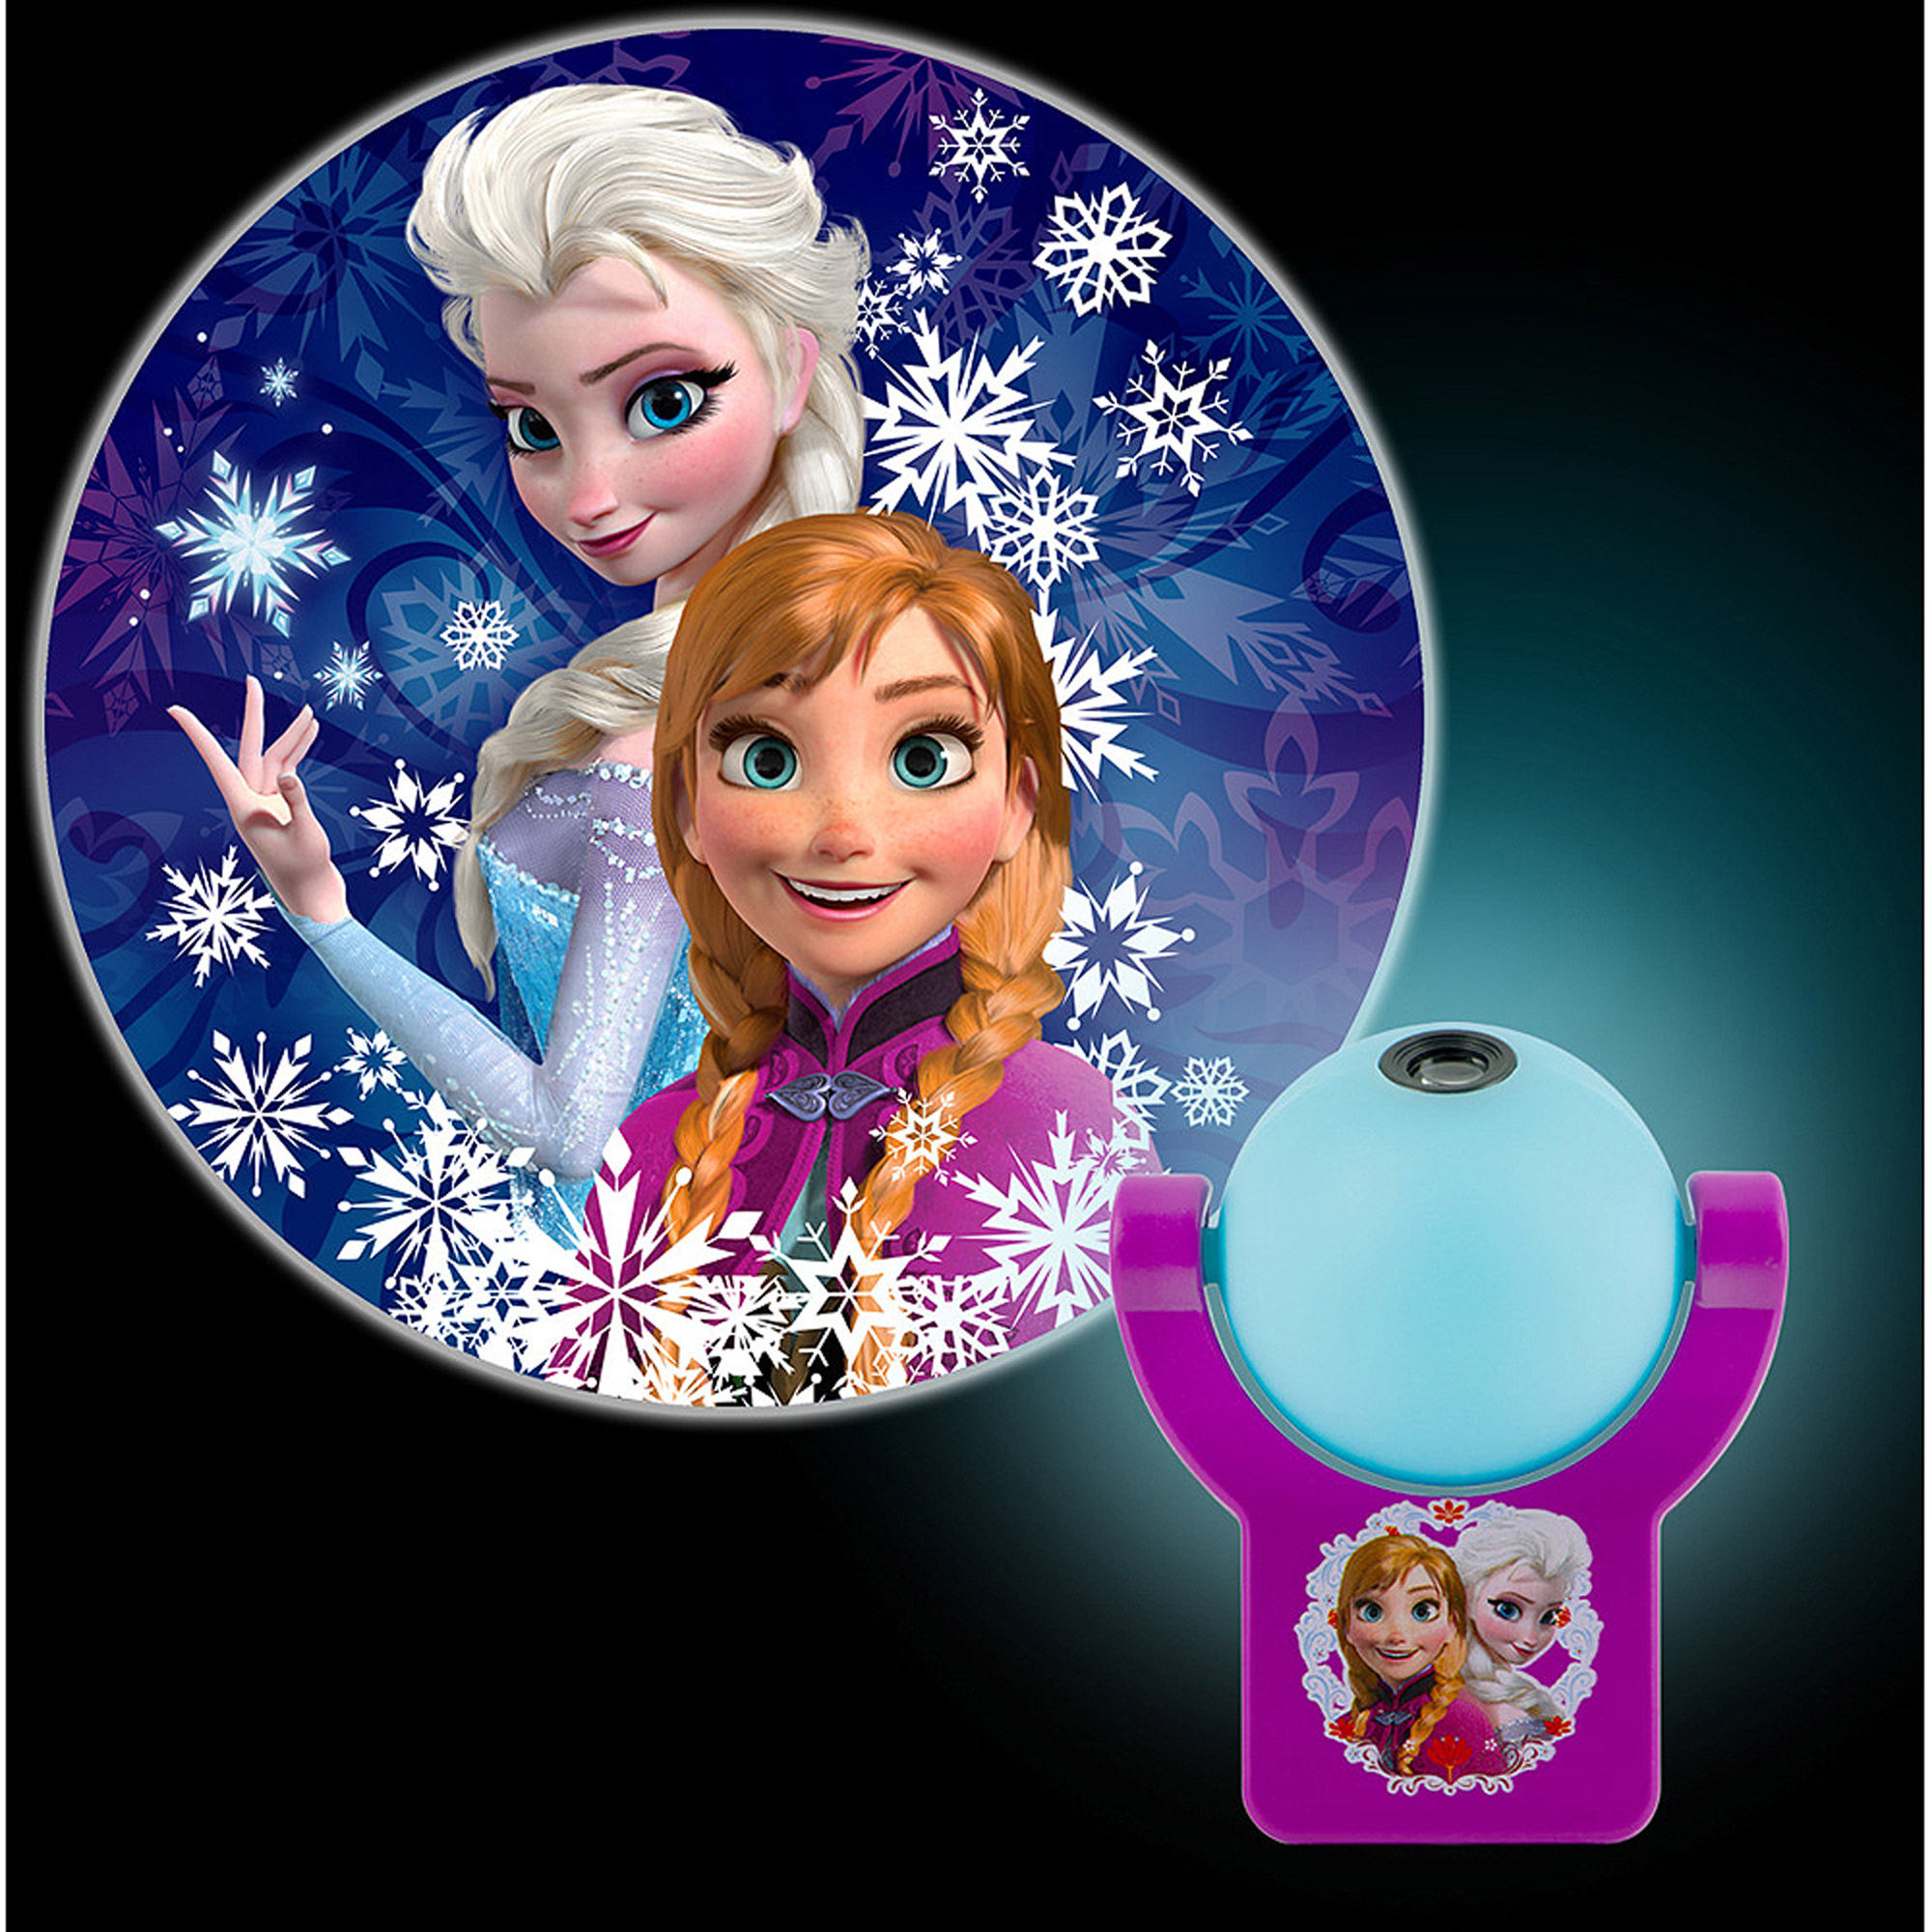 LED Projectable Disney Frozen Nightlight with Auto On/Off